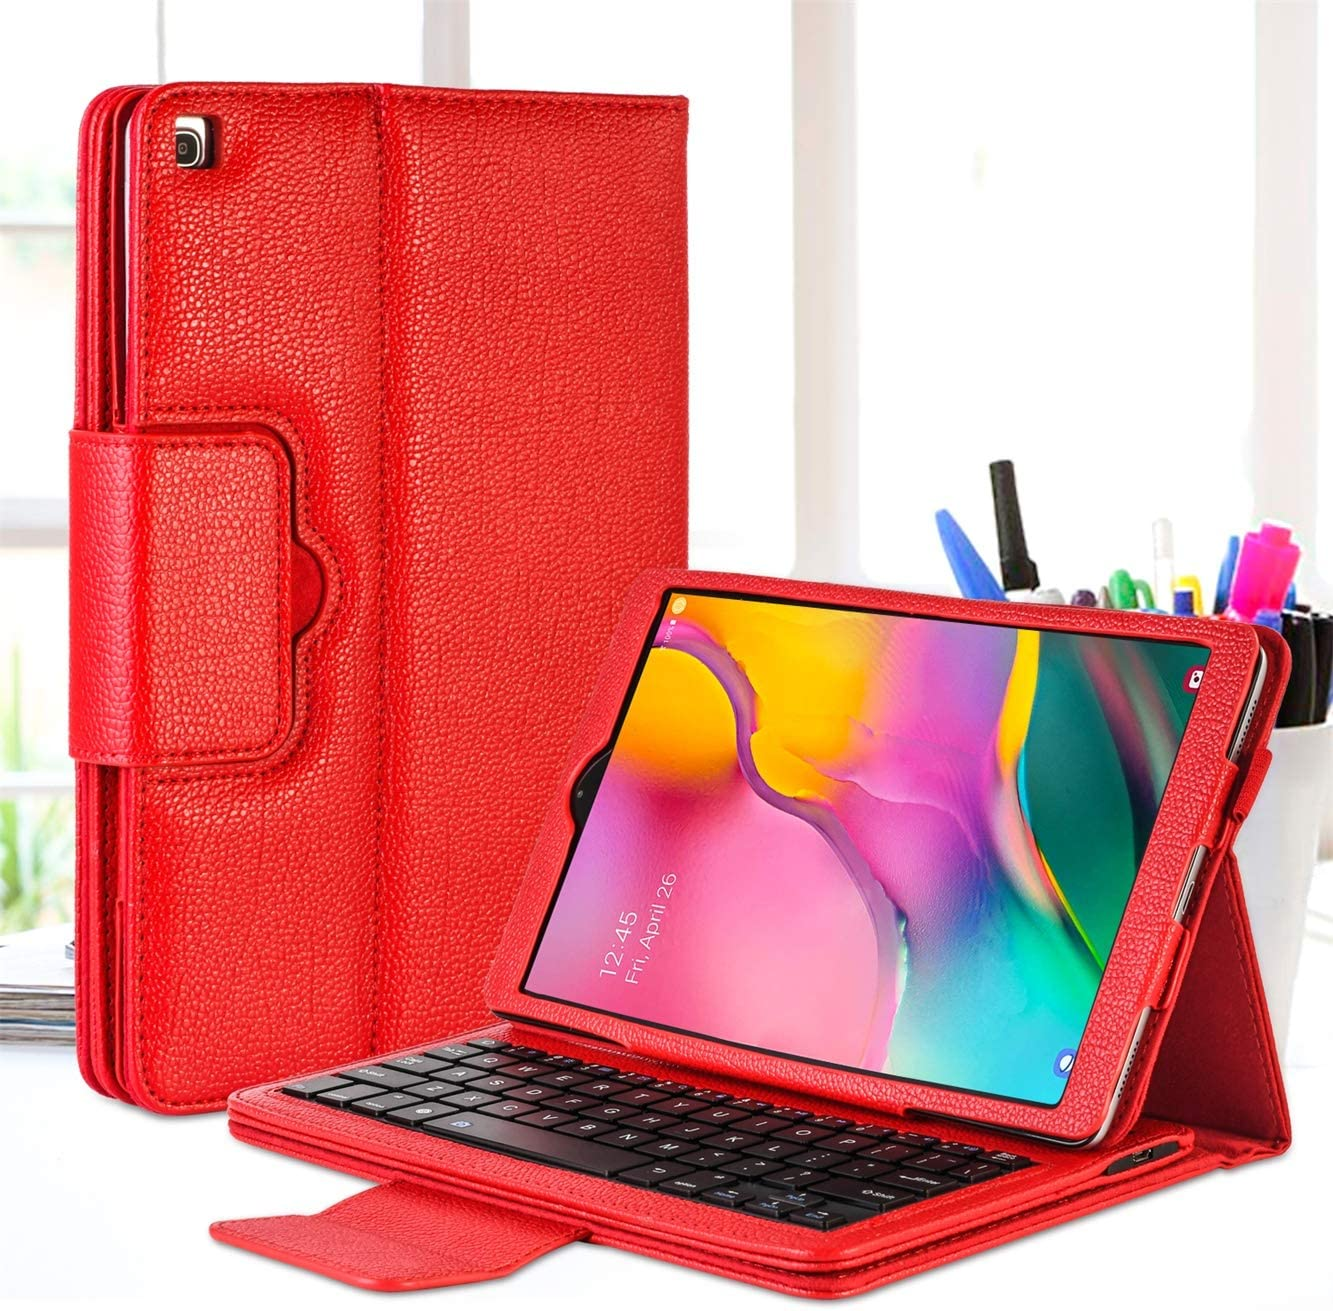 GCION Keyboard Case for Samsung Galaxy Tab A 10.1 2019 (SM-T510,SM-T515,SM-T517),Premium PU Leather Stand Cover with Detachable Wireless Bluetooth Keyboard,Red